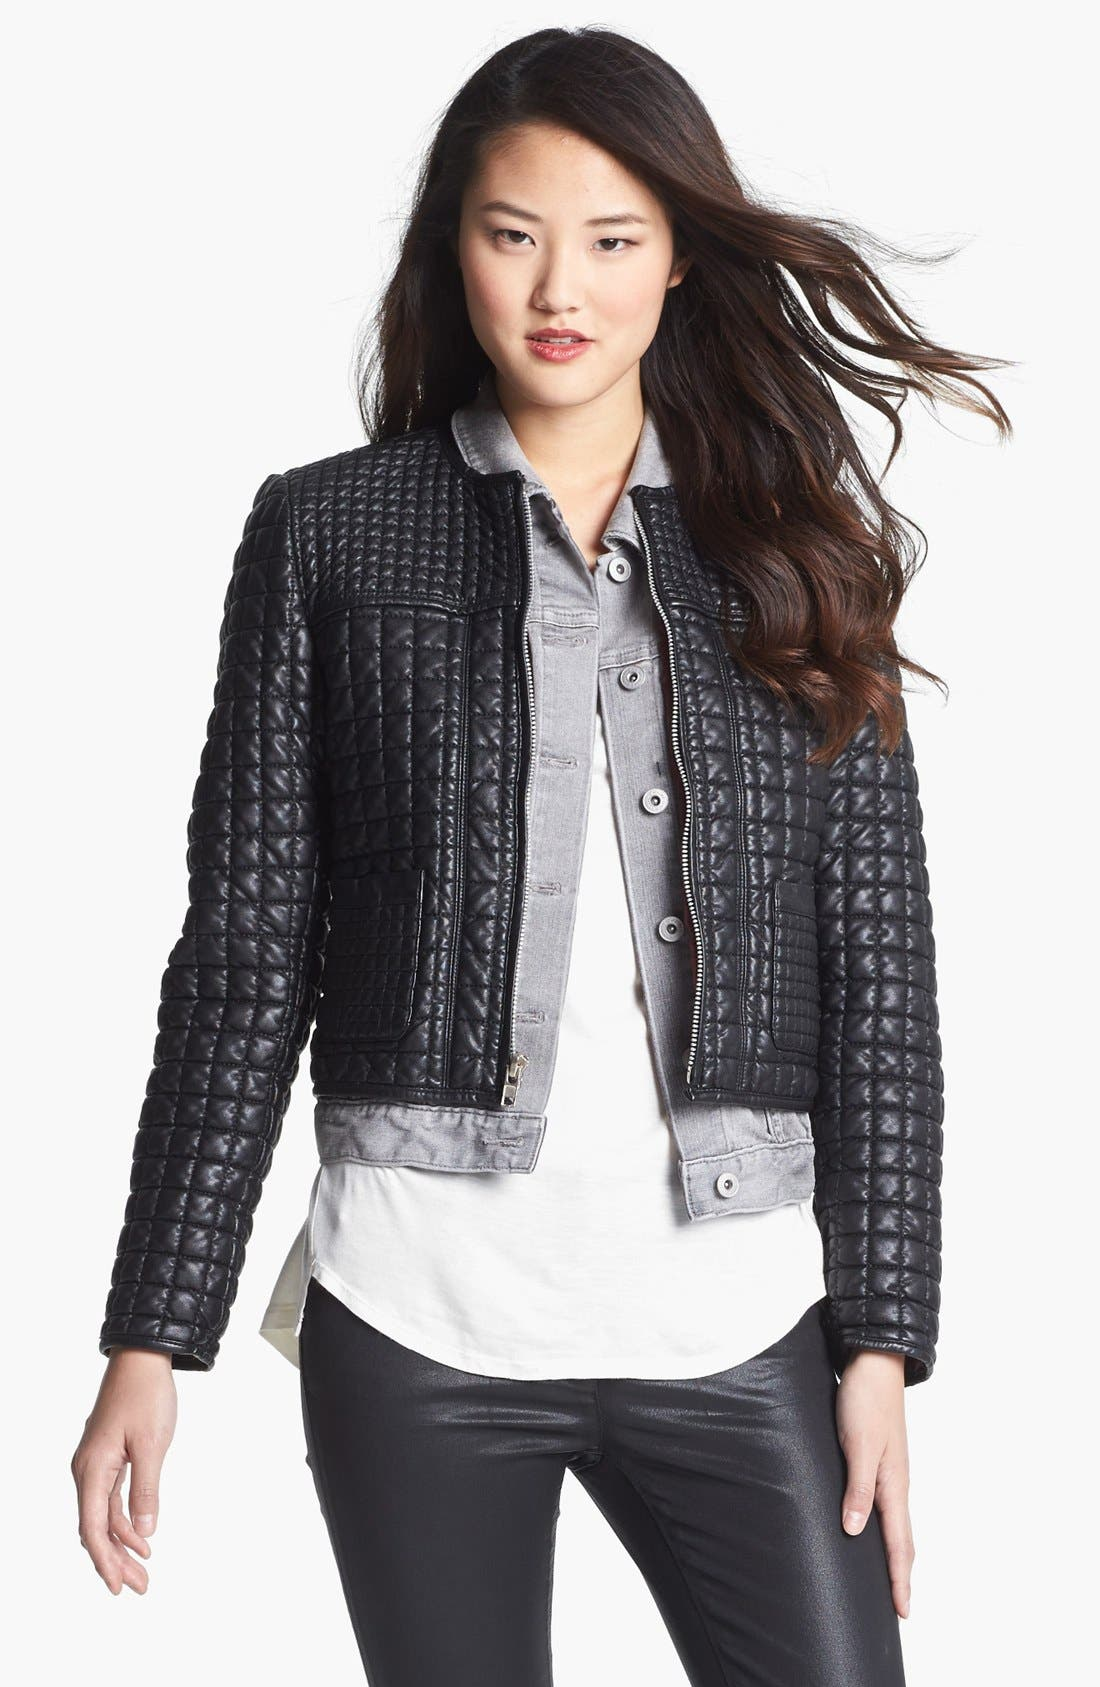 Alternate Image 1 Selected - Two by Vince Camuto 'Hathaway' Quilted Faux Leather Jacket